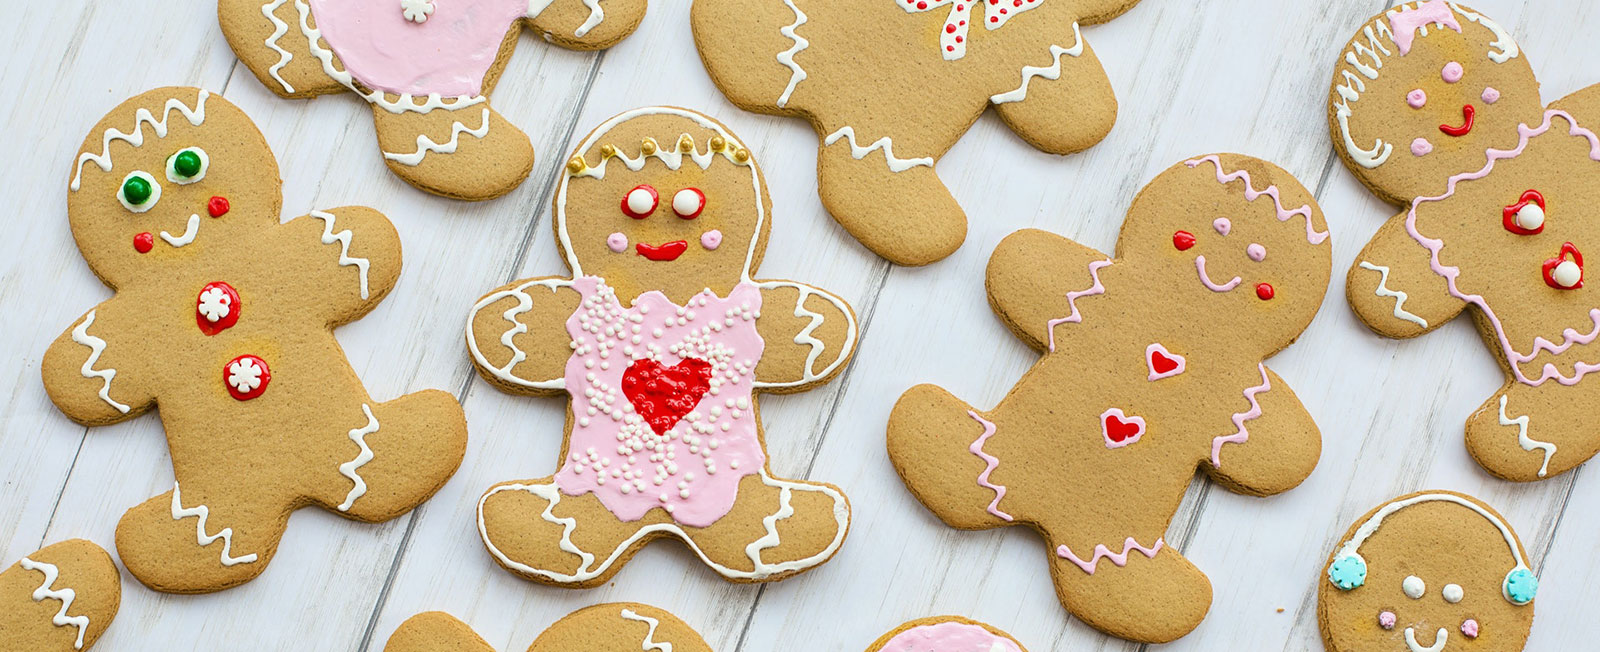 Christmas Cookie Workshop for Families: December 22 2020